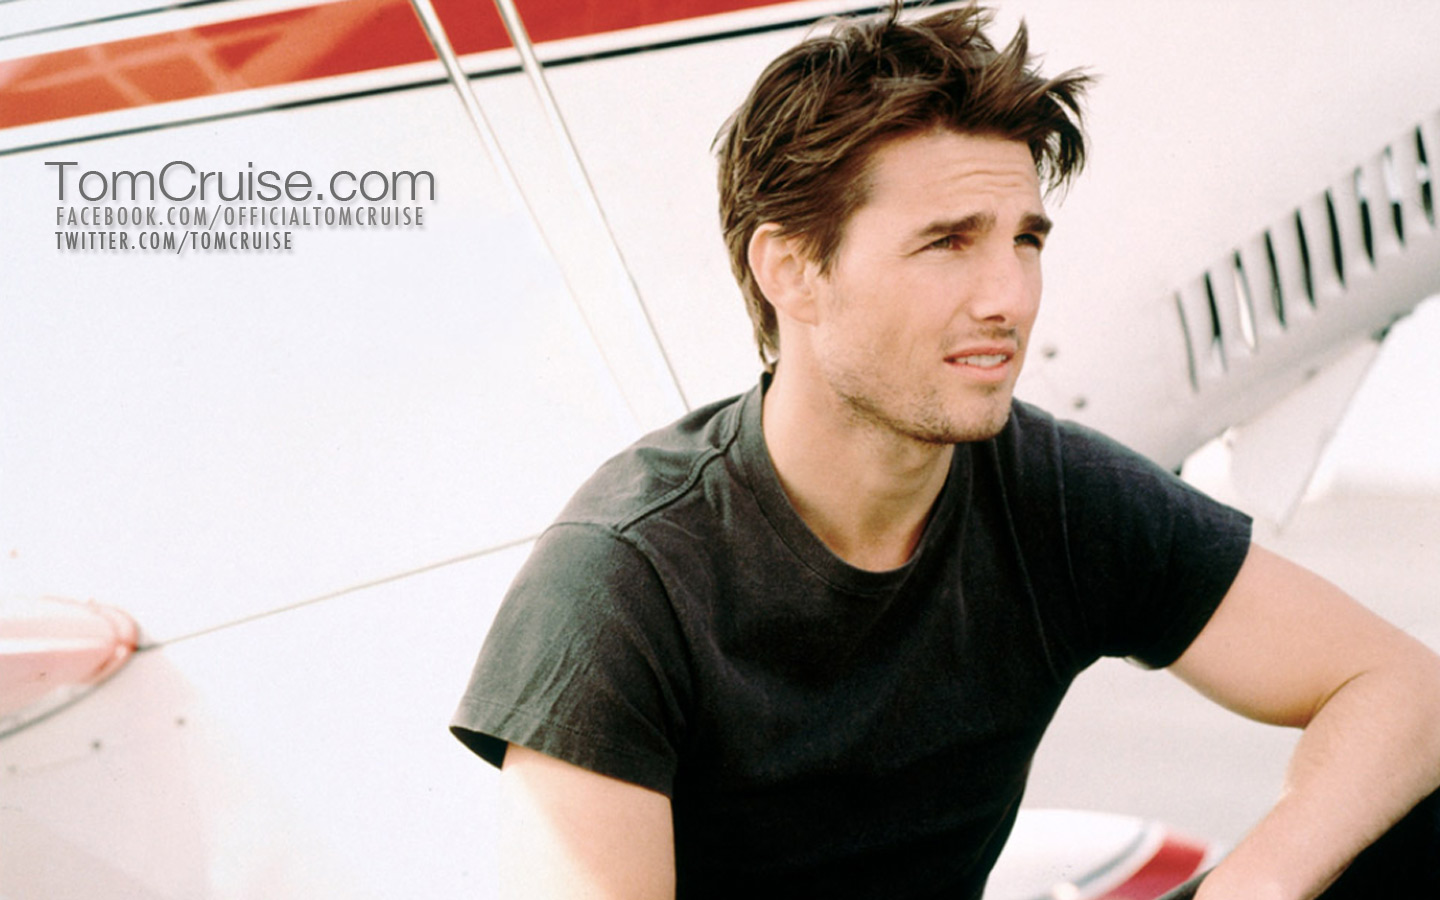 Funny Facts About Tom Cruise 30 Free Hd Wallpaper